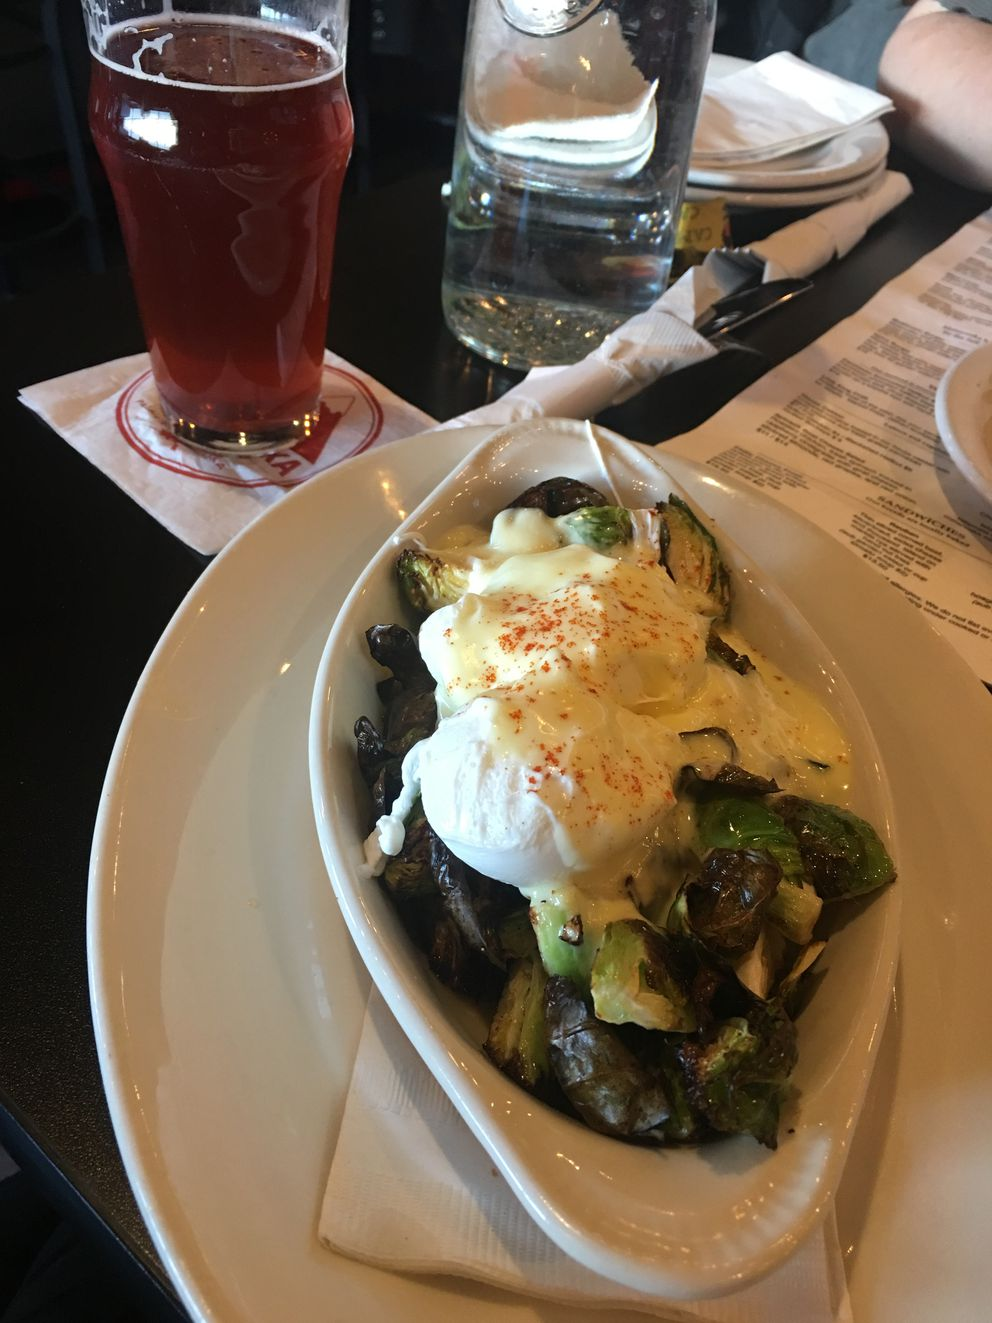 Roasted Brussels sprouts ($10) with a poached egg and hollandaise at Matanuska Brewing Company Anchorage (Photo by Mara Severin)